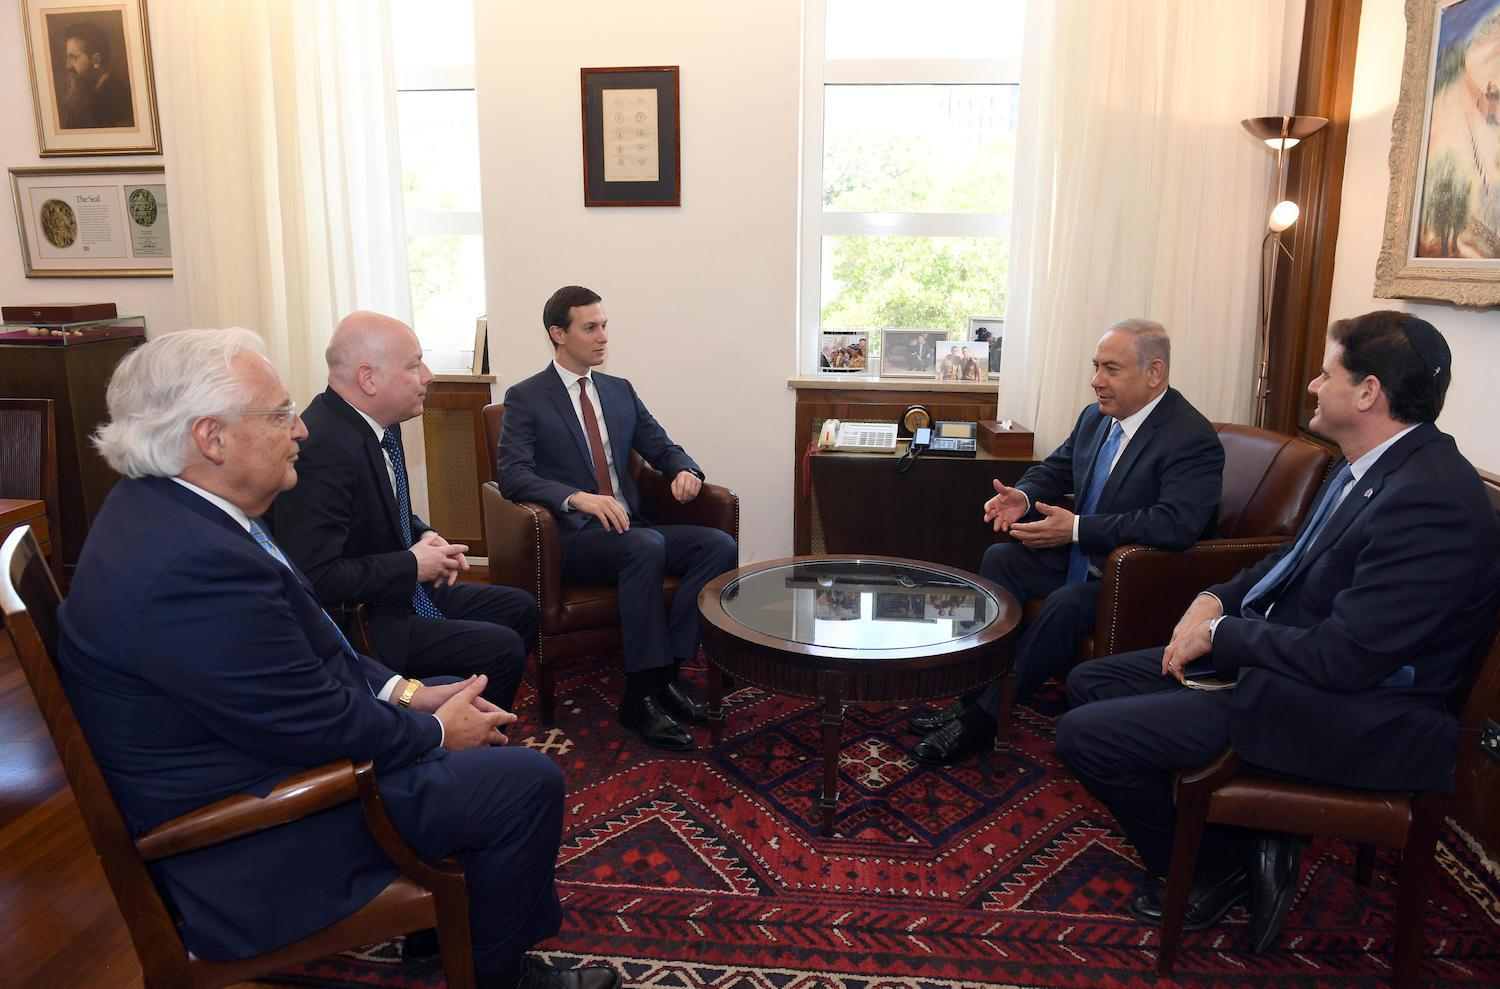 Prime Minister of Israel Netanyahu meets with Jared Kushner, Jason Greenblatt and David Friedman